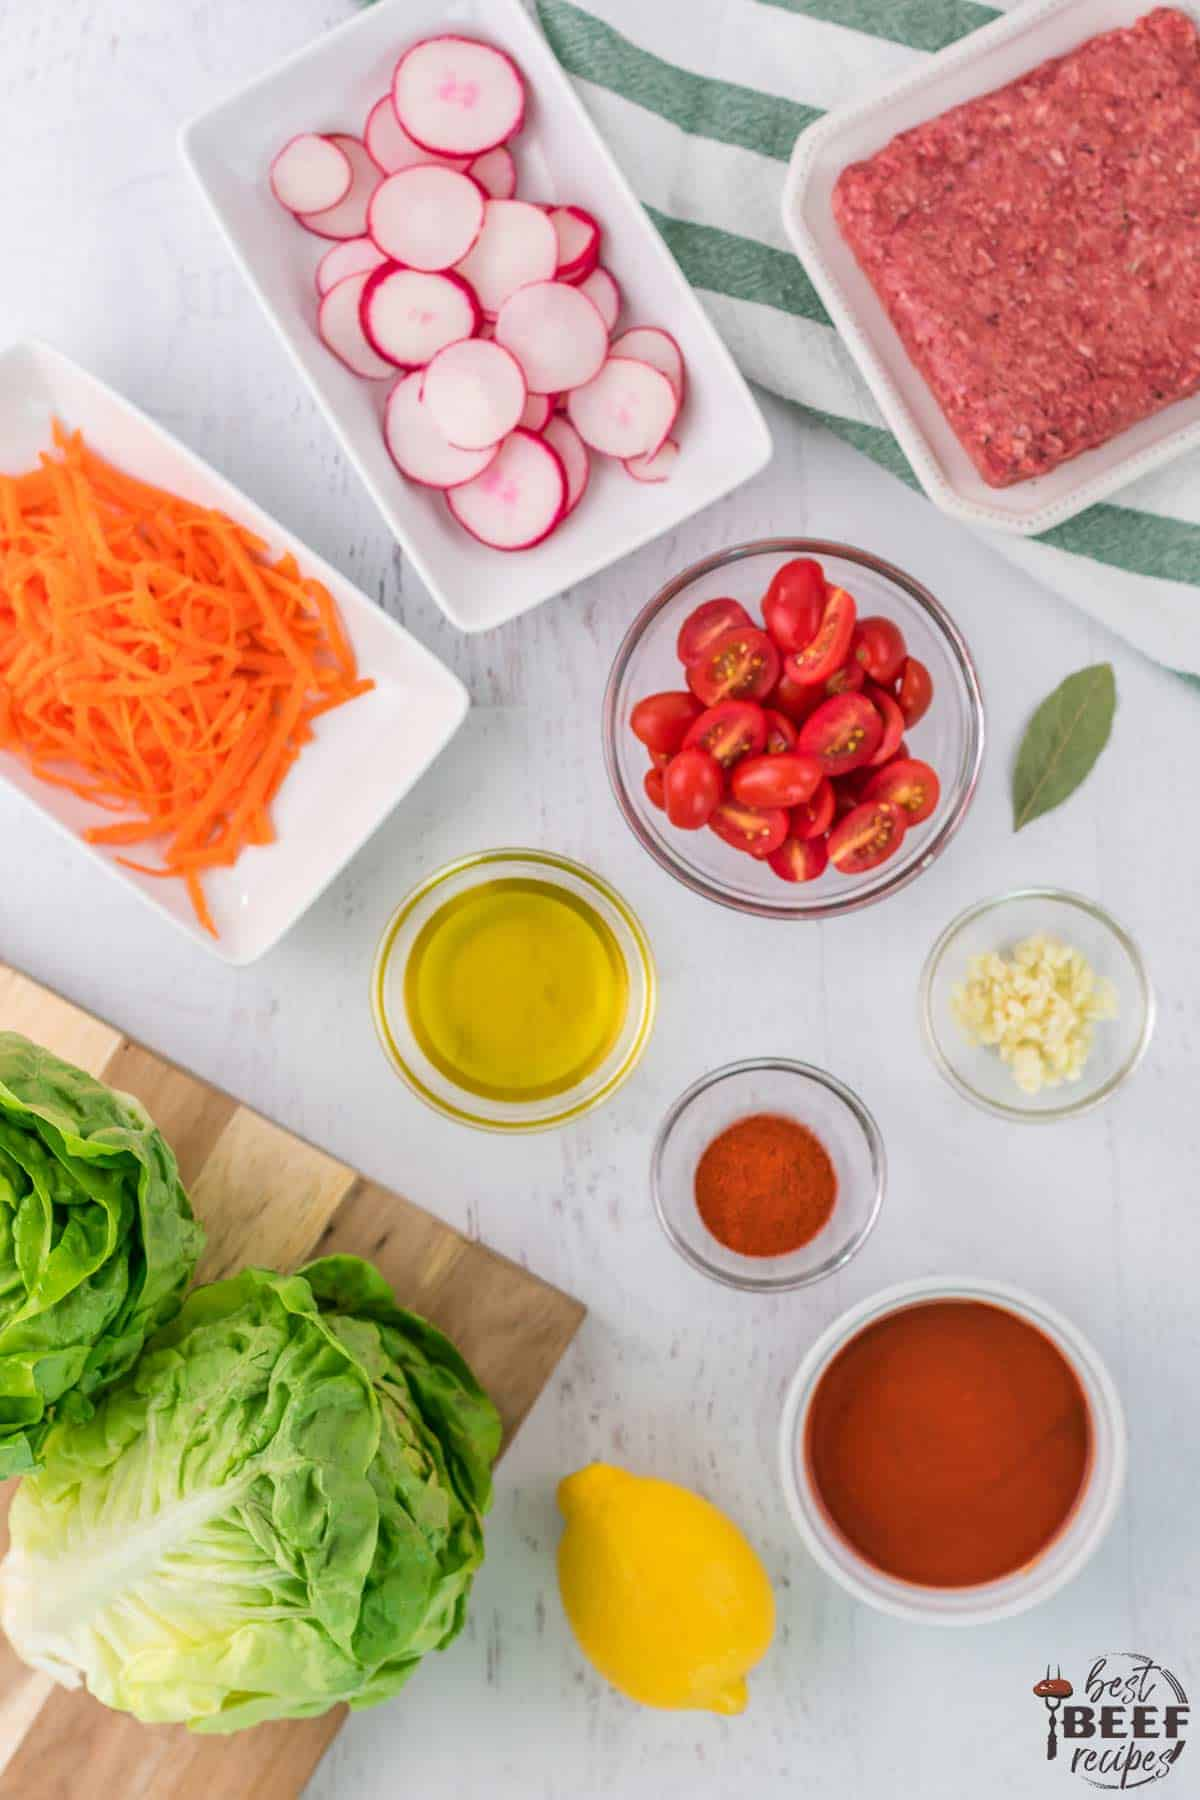 Ingredients for Portuguese ground beef lettuce wraps recipe on table next to each other